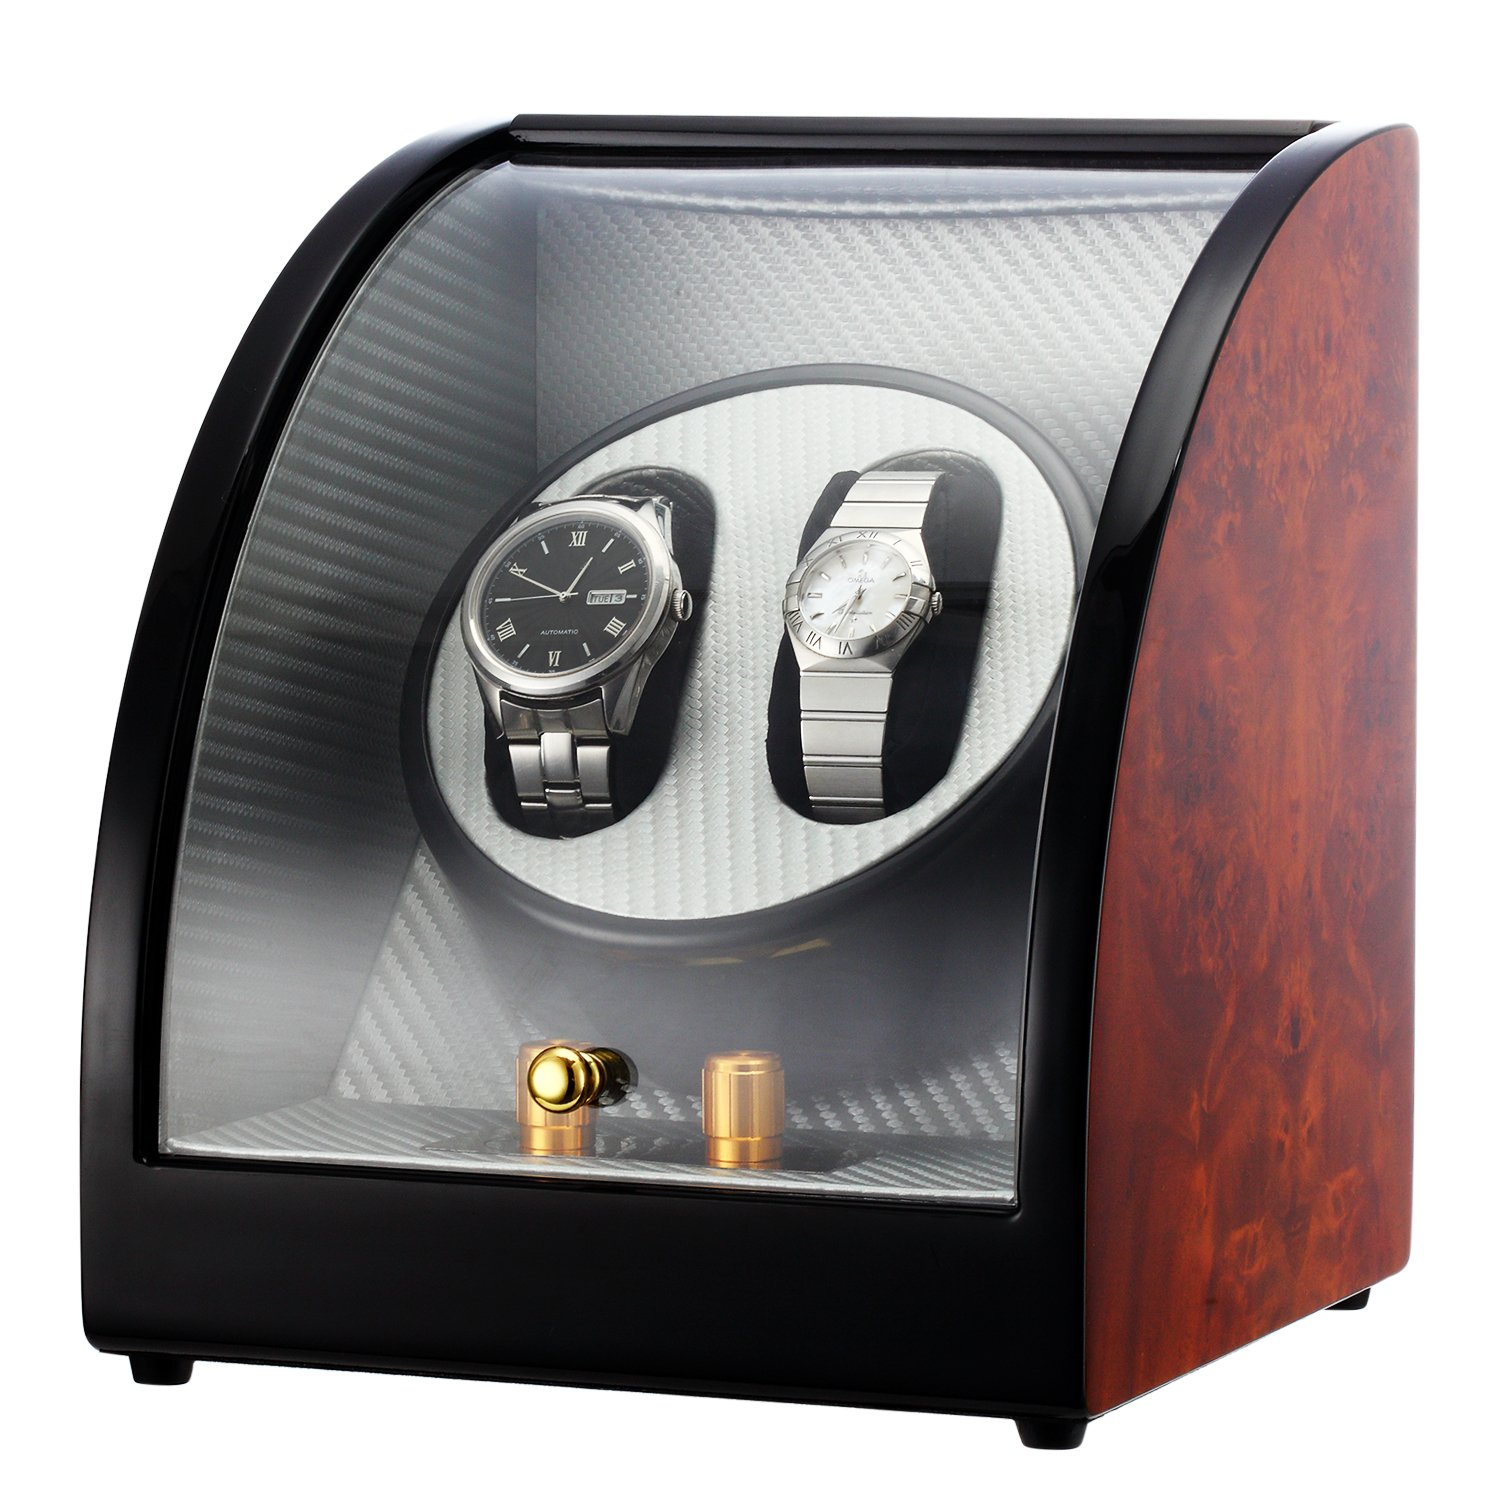 CHIYODA Dual Automatic Watch Winder with Quiet Motors, 12 Setting Rotation Modes - Patent Design